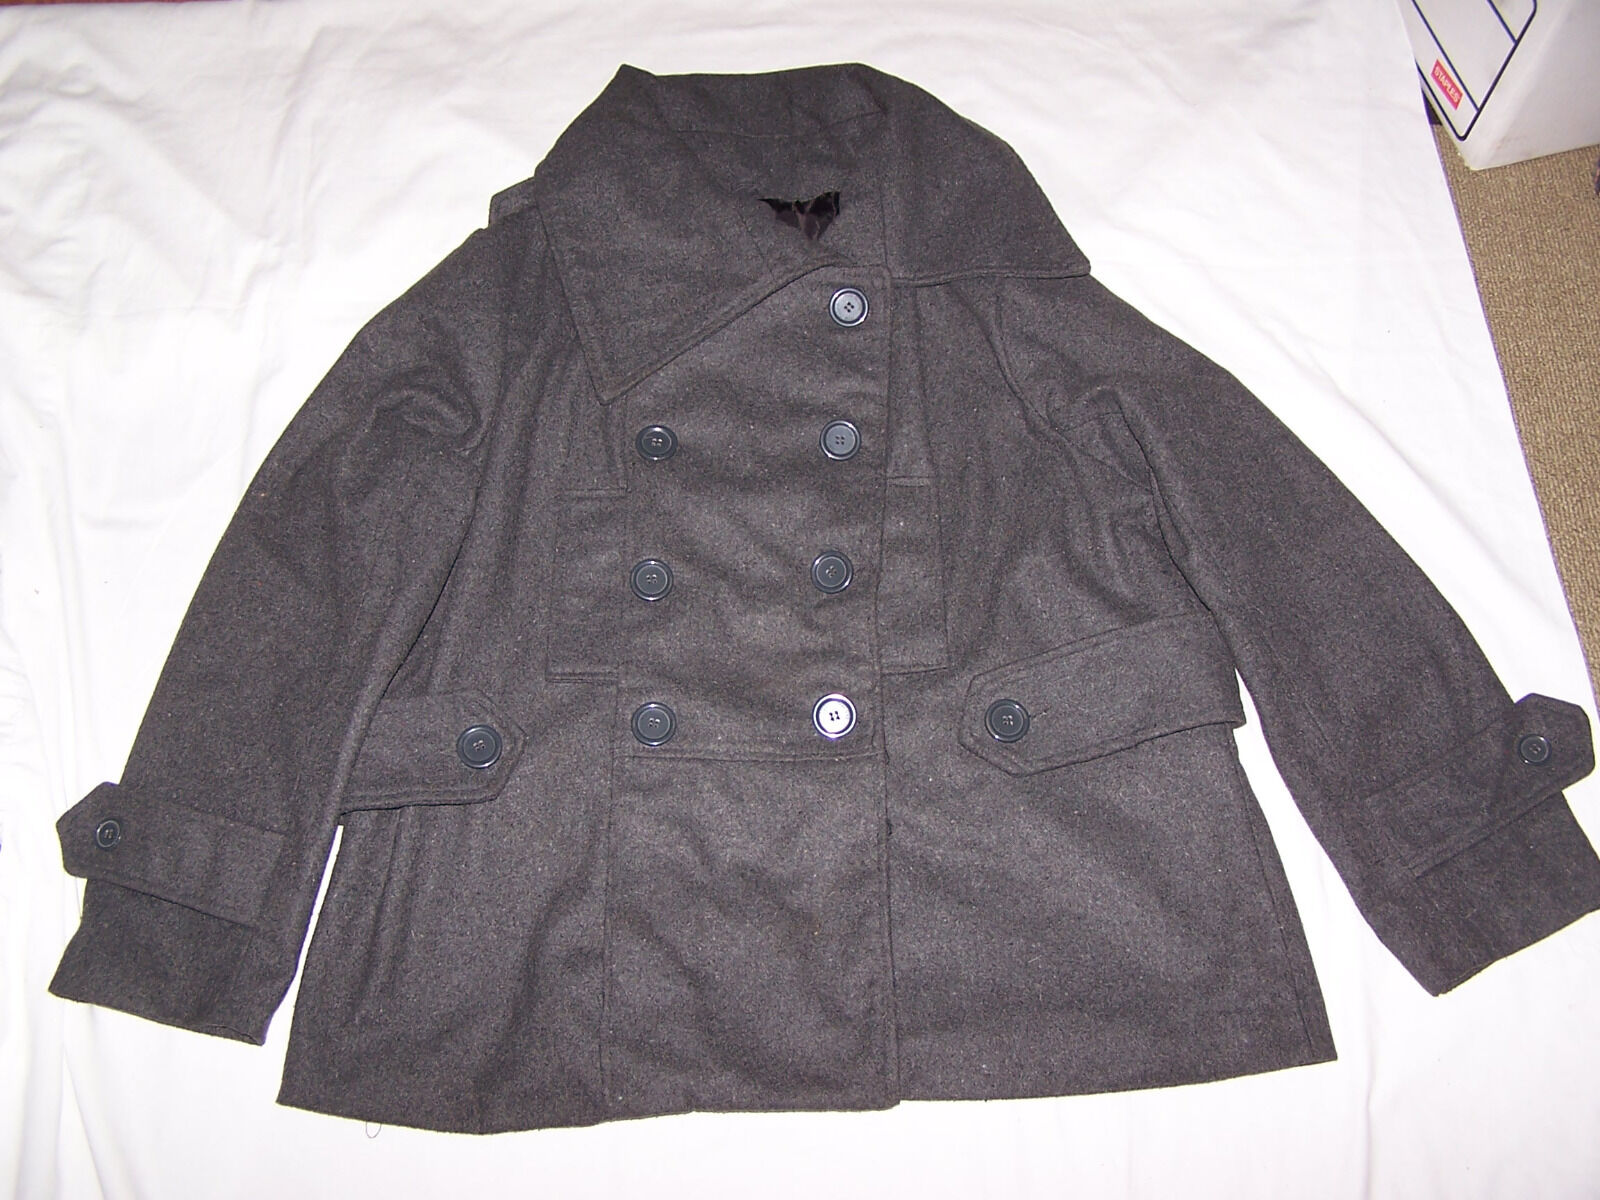 MISS LONDON Dark GREY COAT Size 2XL junior, NEW